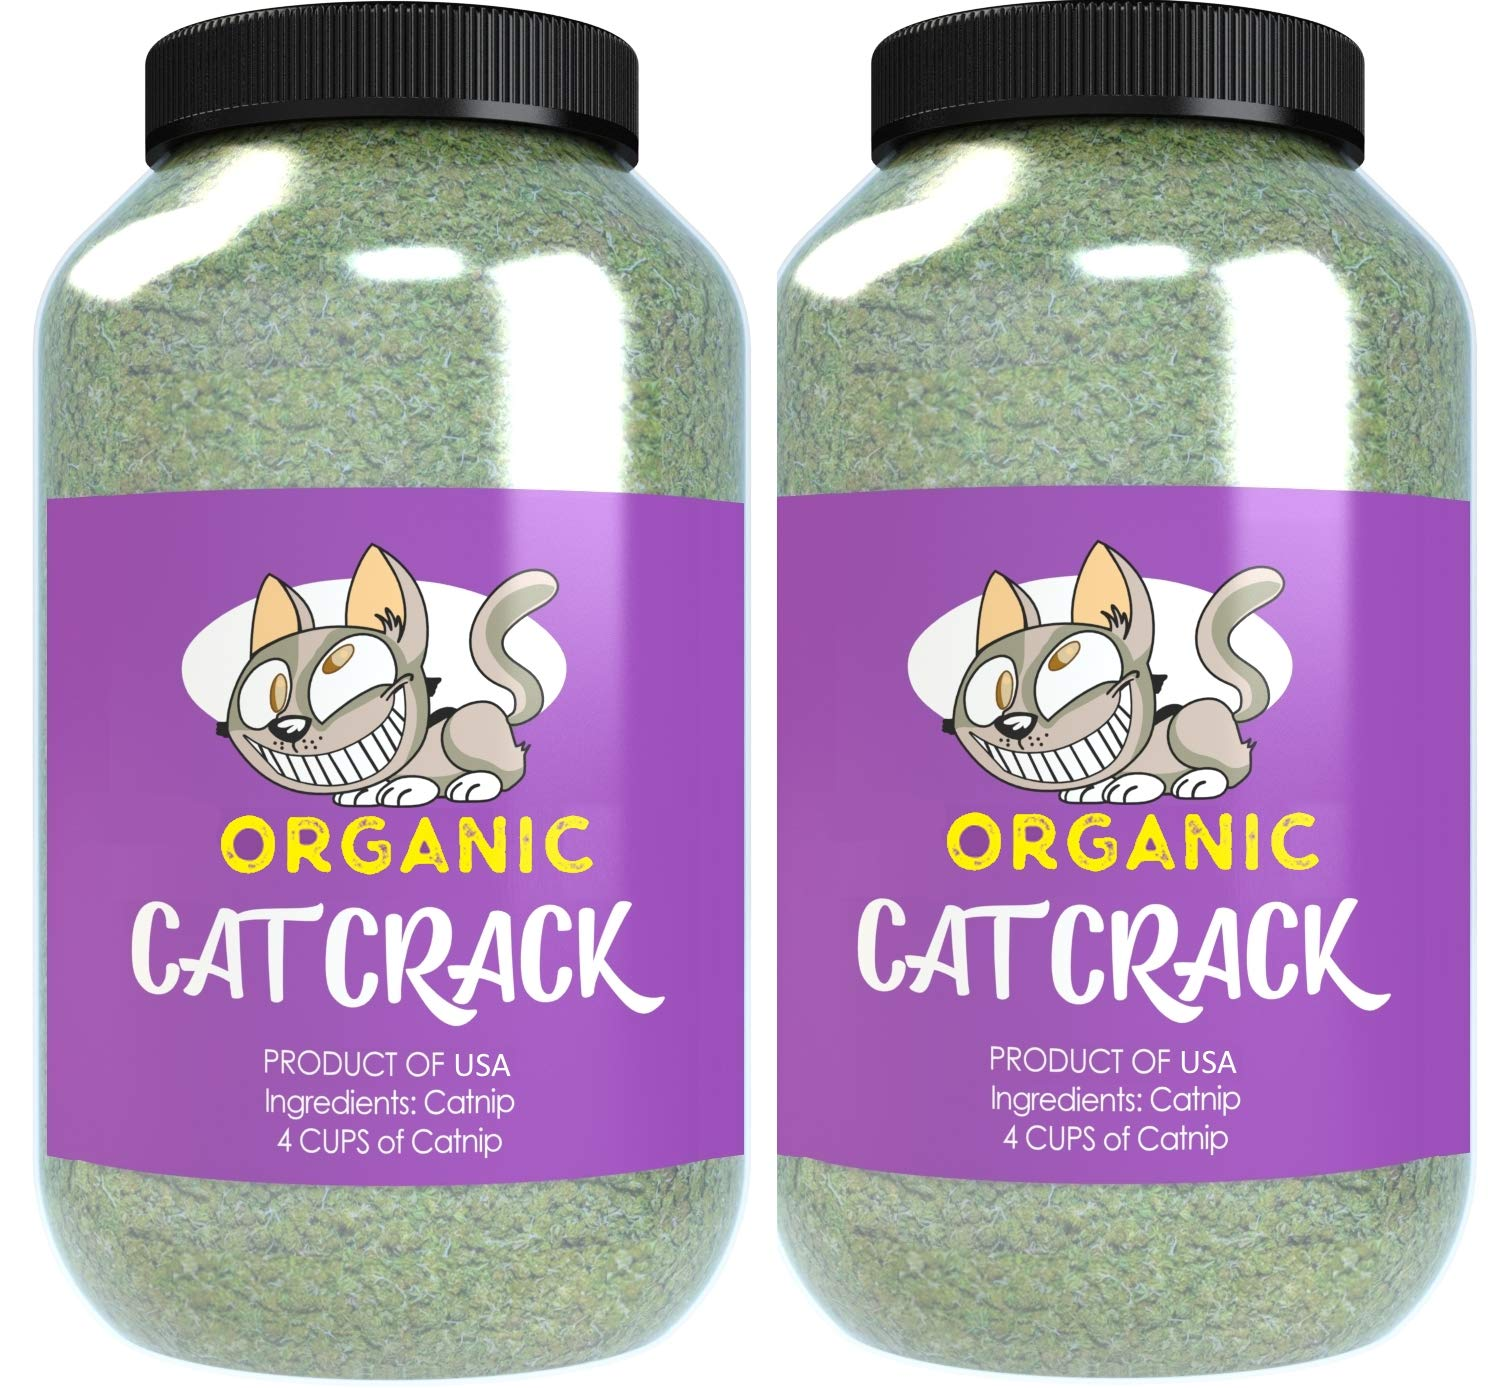 Cat Crack Organic Catnip, Premium Blend Safe for Cats, Infused with Maximum Potency Your Kitty is Sure to Go Crazy for (8 Cups) by Cat Crack